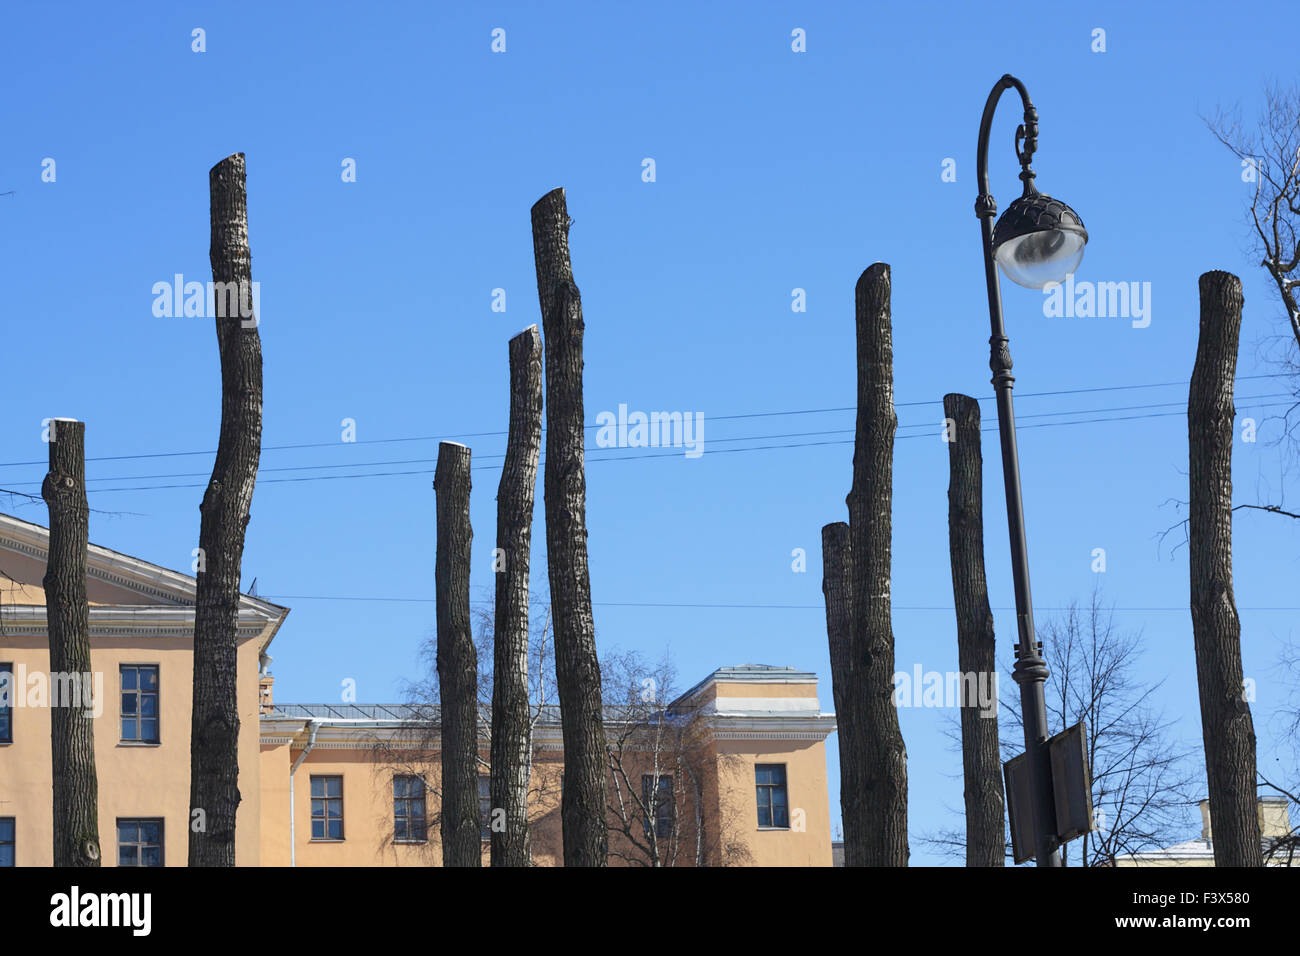 Clipped the tops of trees - Stock Image